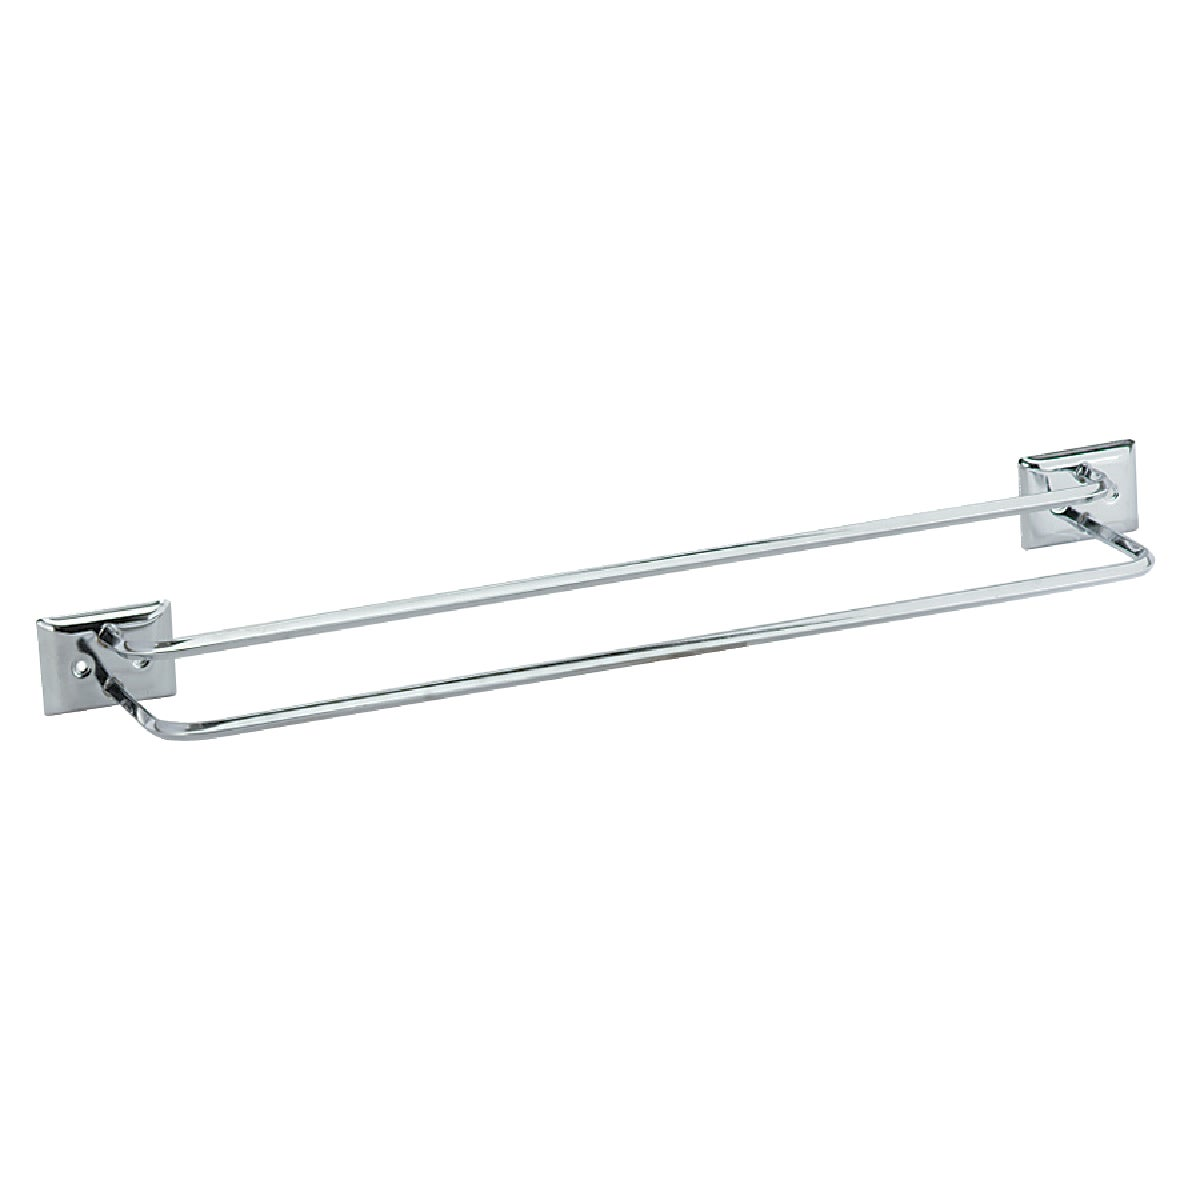 "18"" CHROME TOWEL BAR"